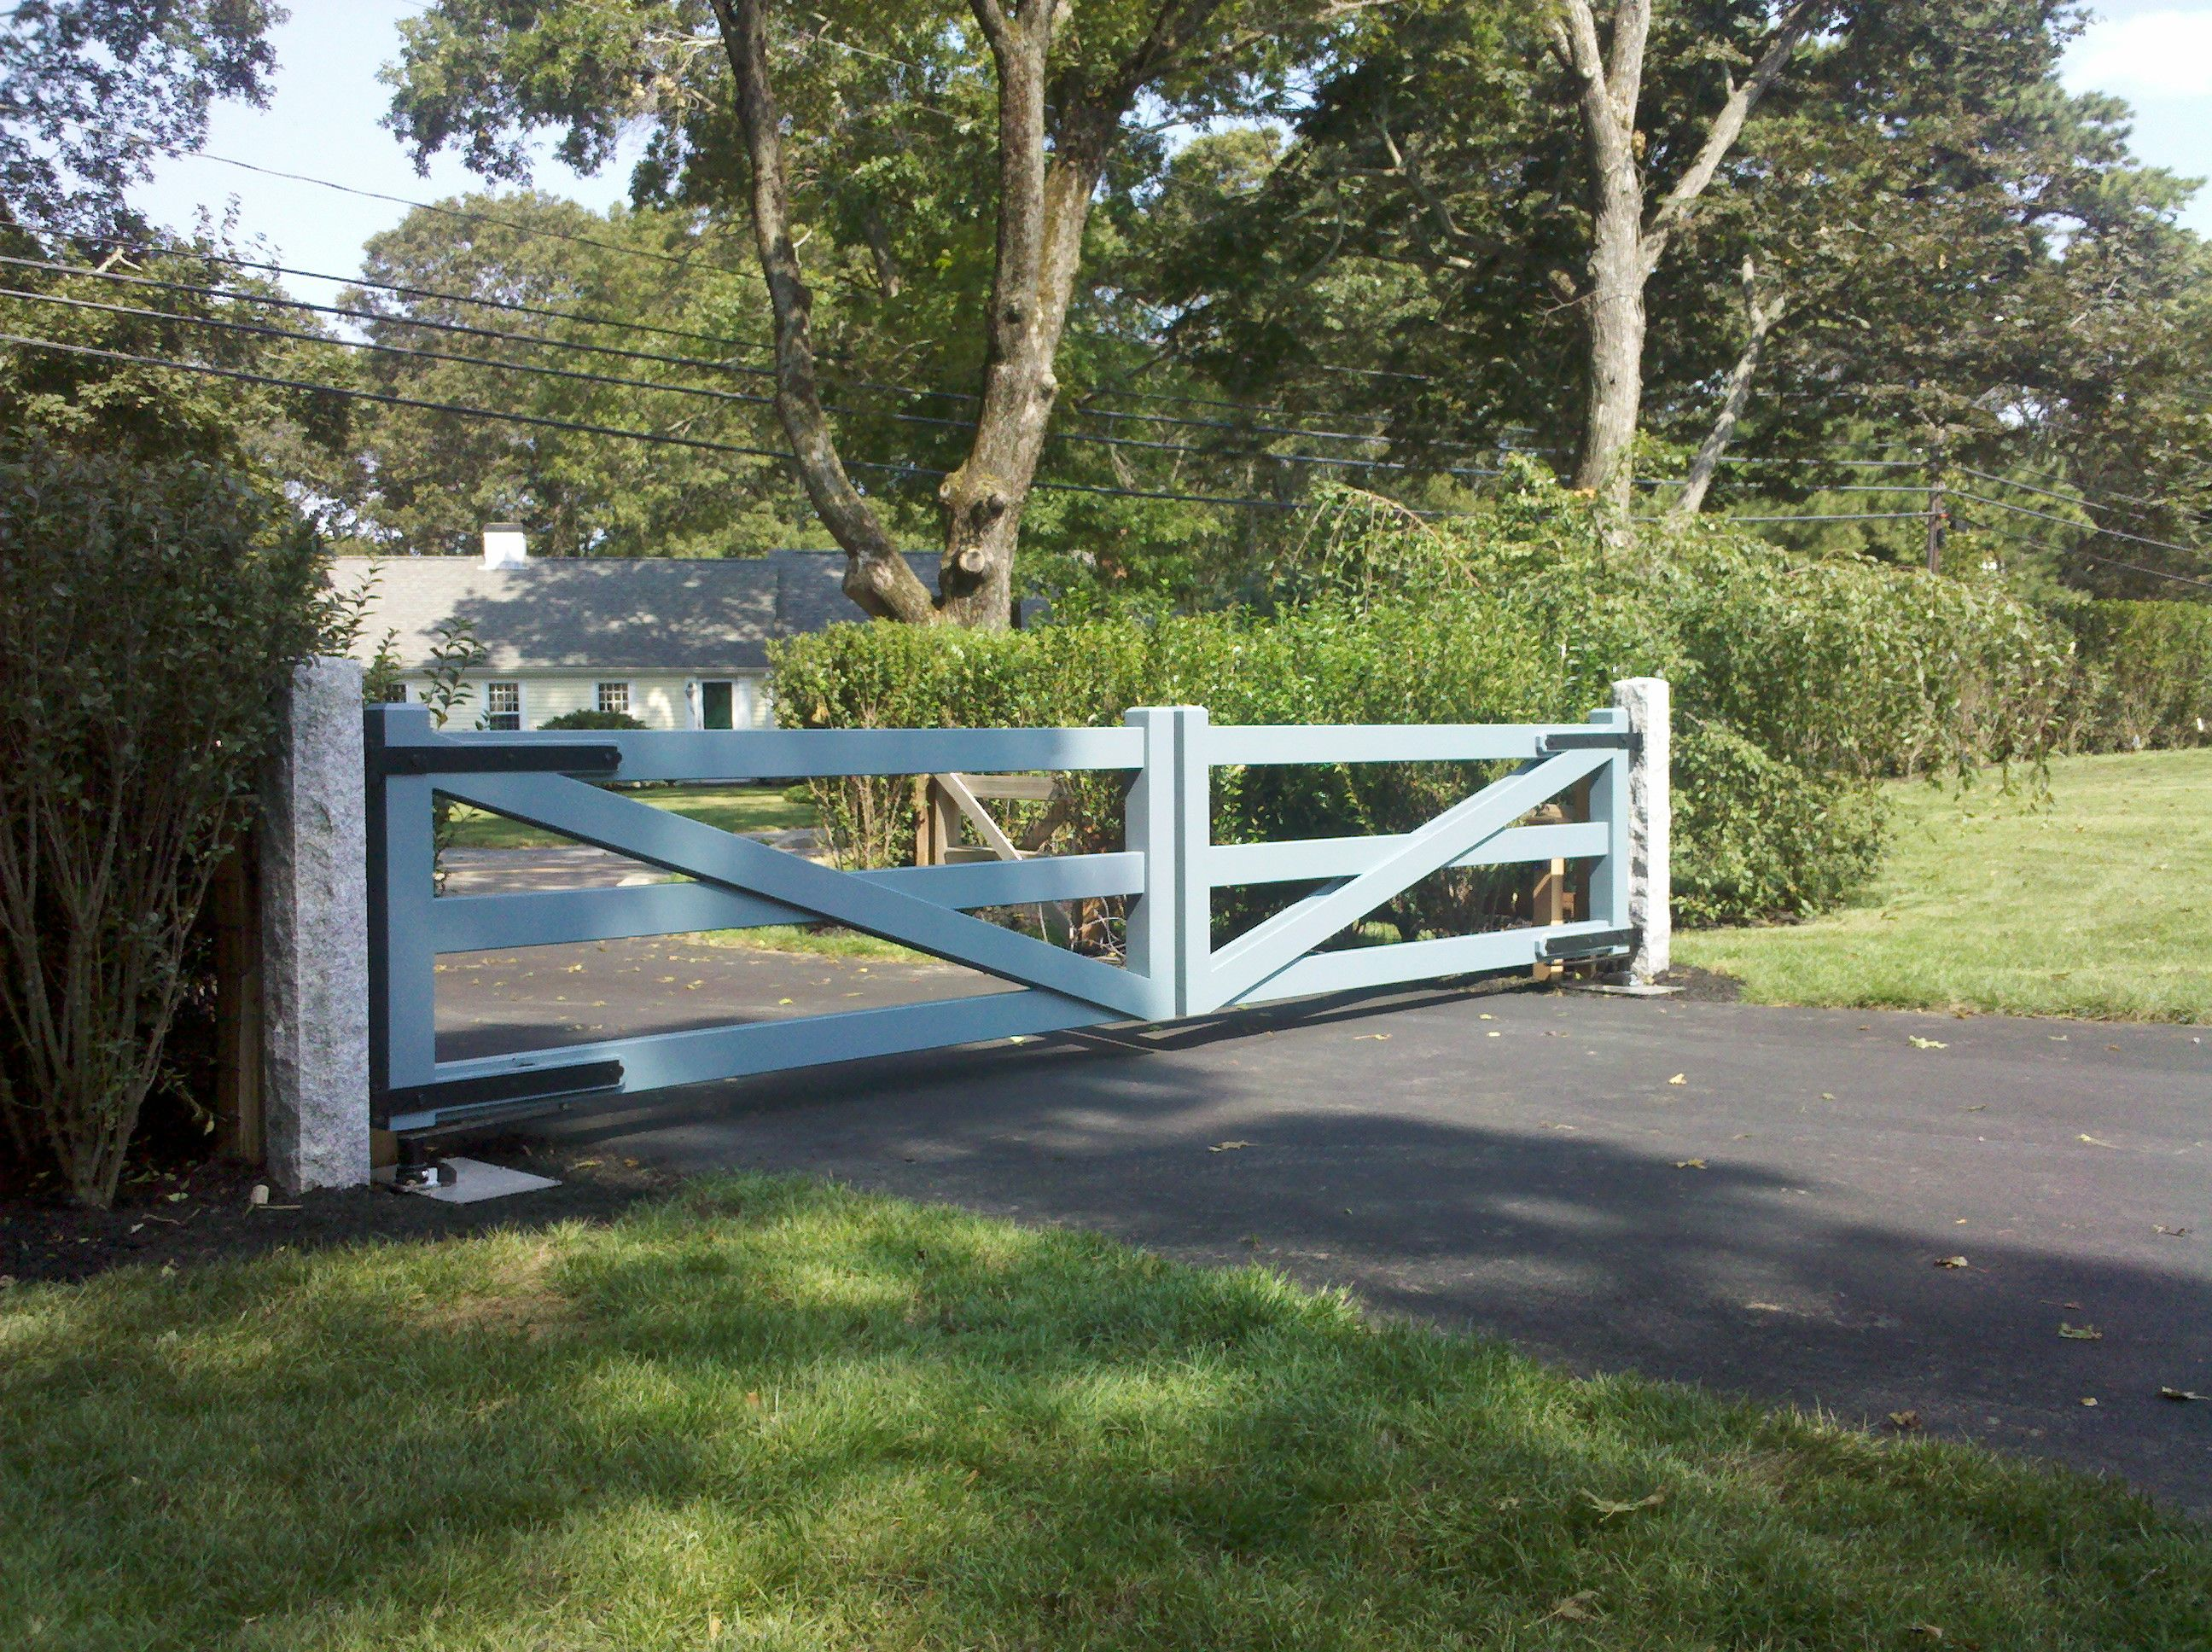 New England Woodworkers, Custom Fence Company For Picket Fences, Privacy